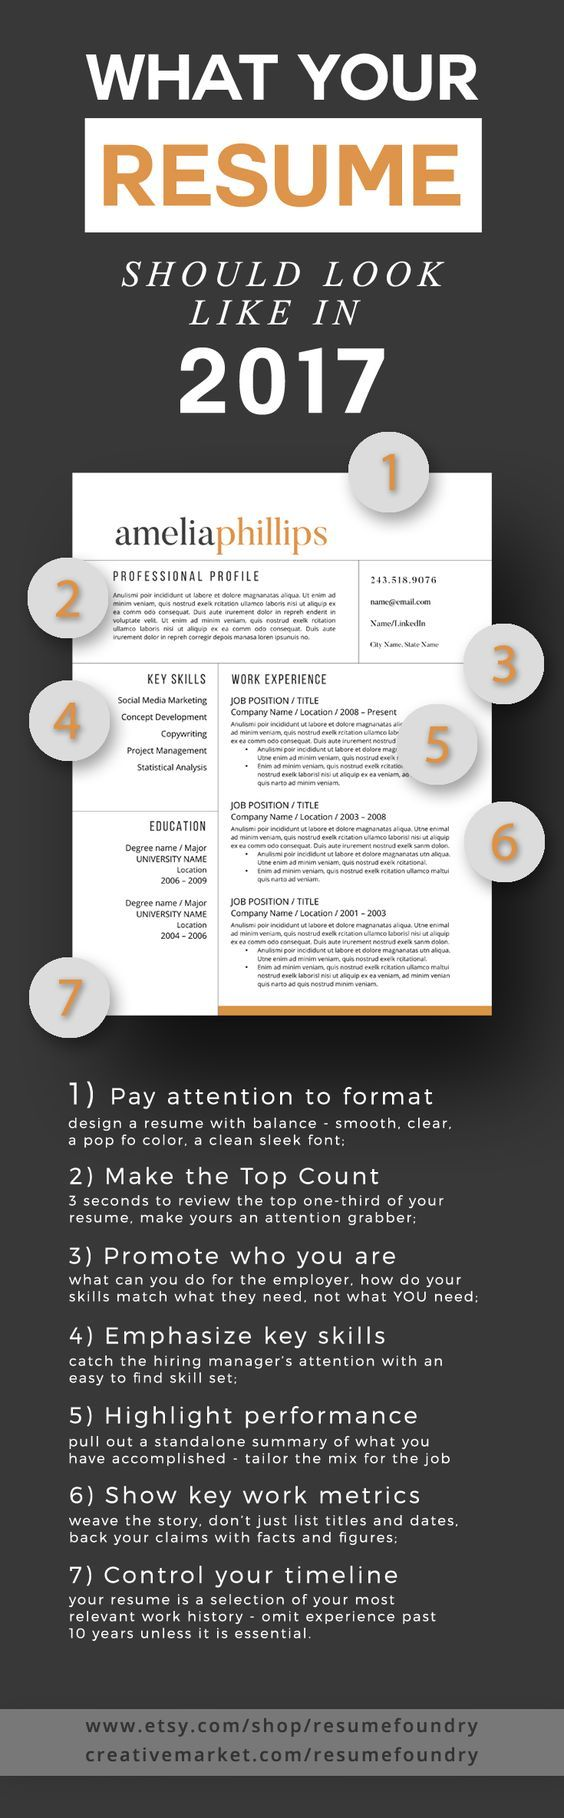 Best 25 Resume Tips Ideas On Pinterest Resume Resume Ideas And